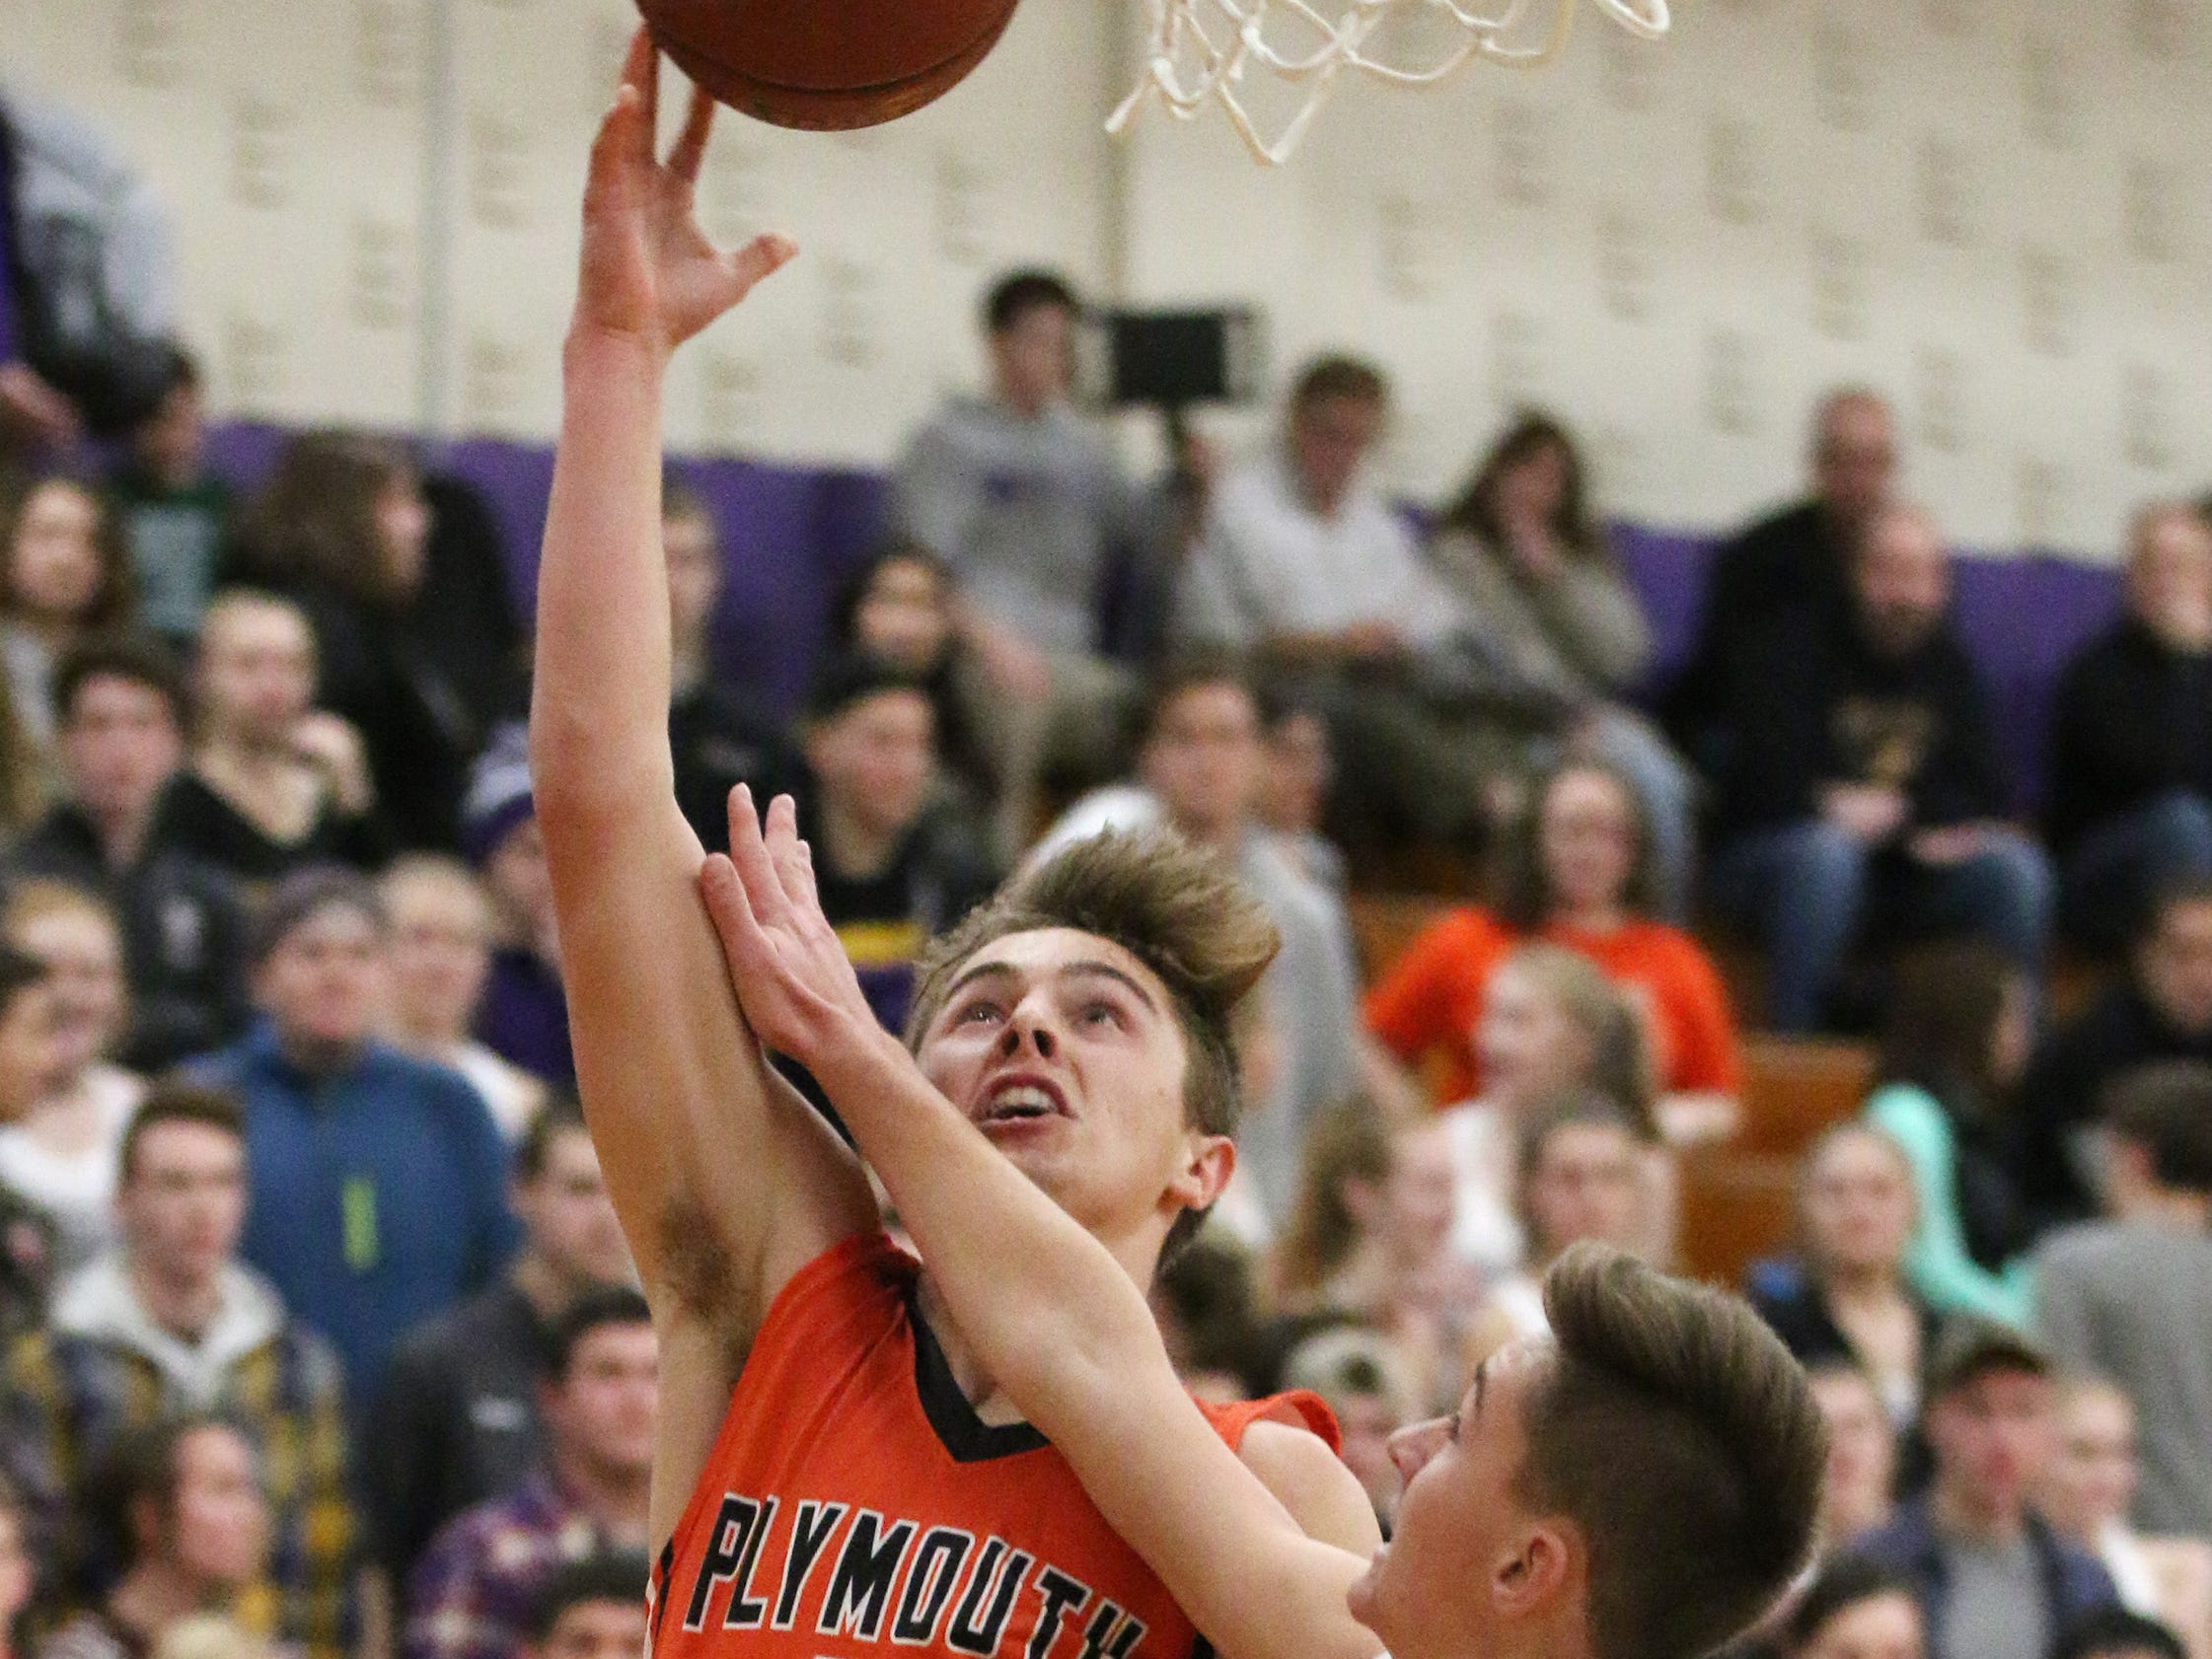 Plymouth's Cole Booth (11) drives to the basket by a Sheboygan Falls player, Tuesday, November 20, 2018, in Sheboygan Falls, Wis.